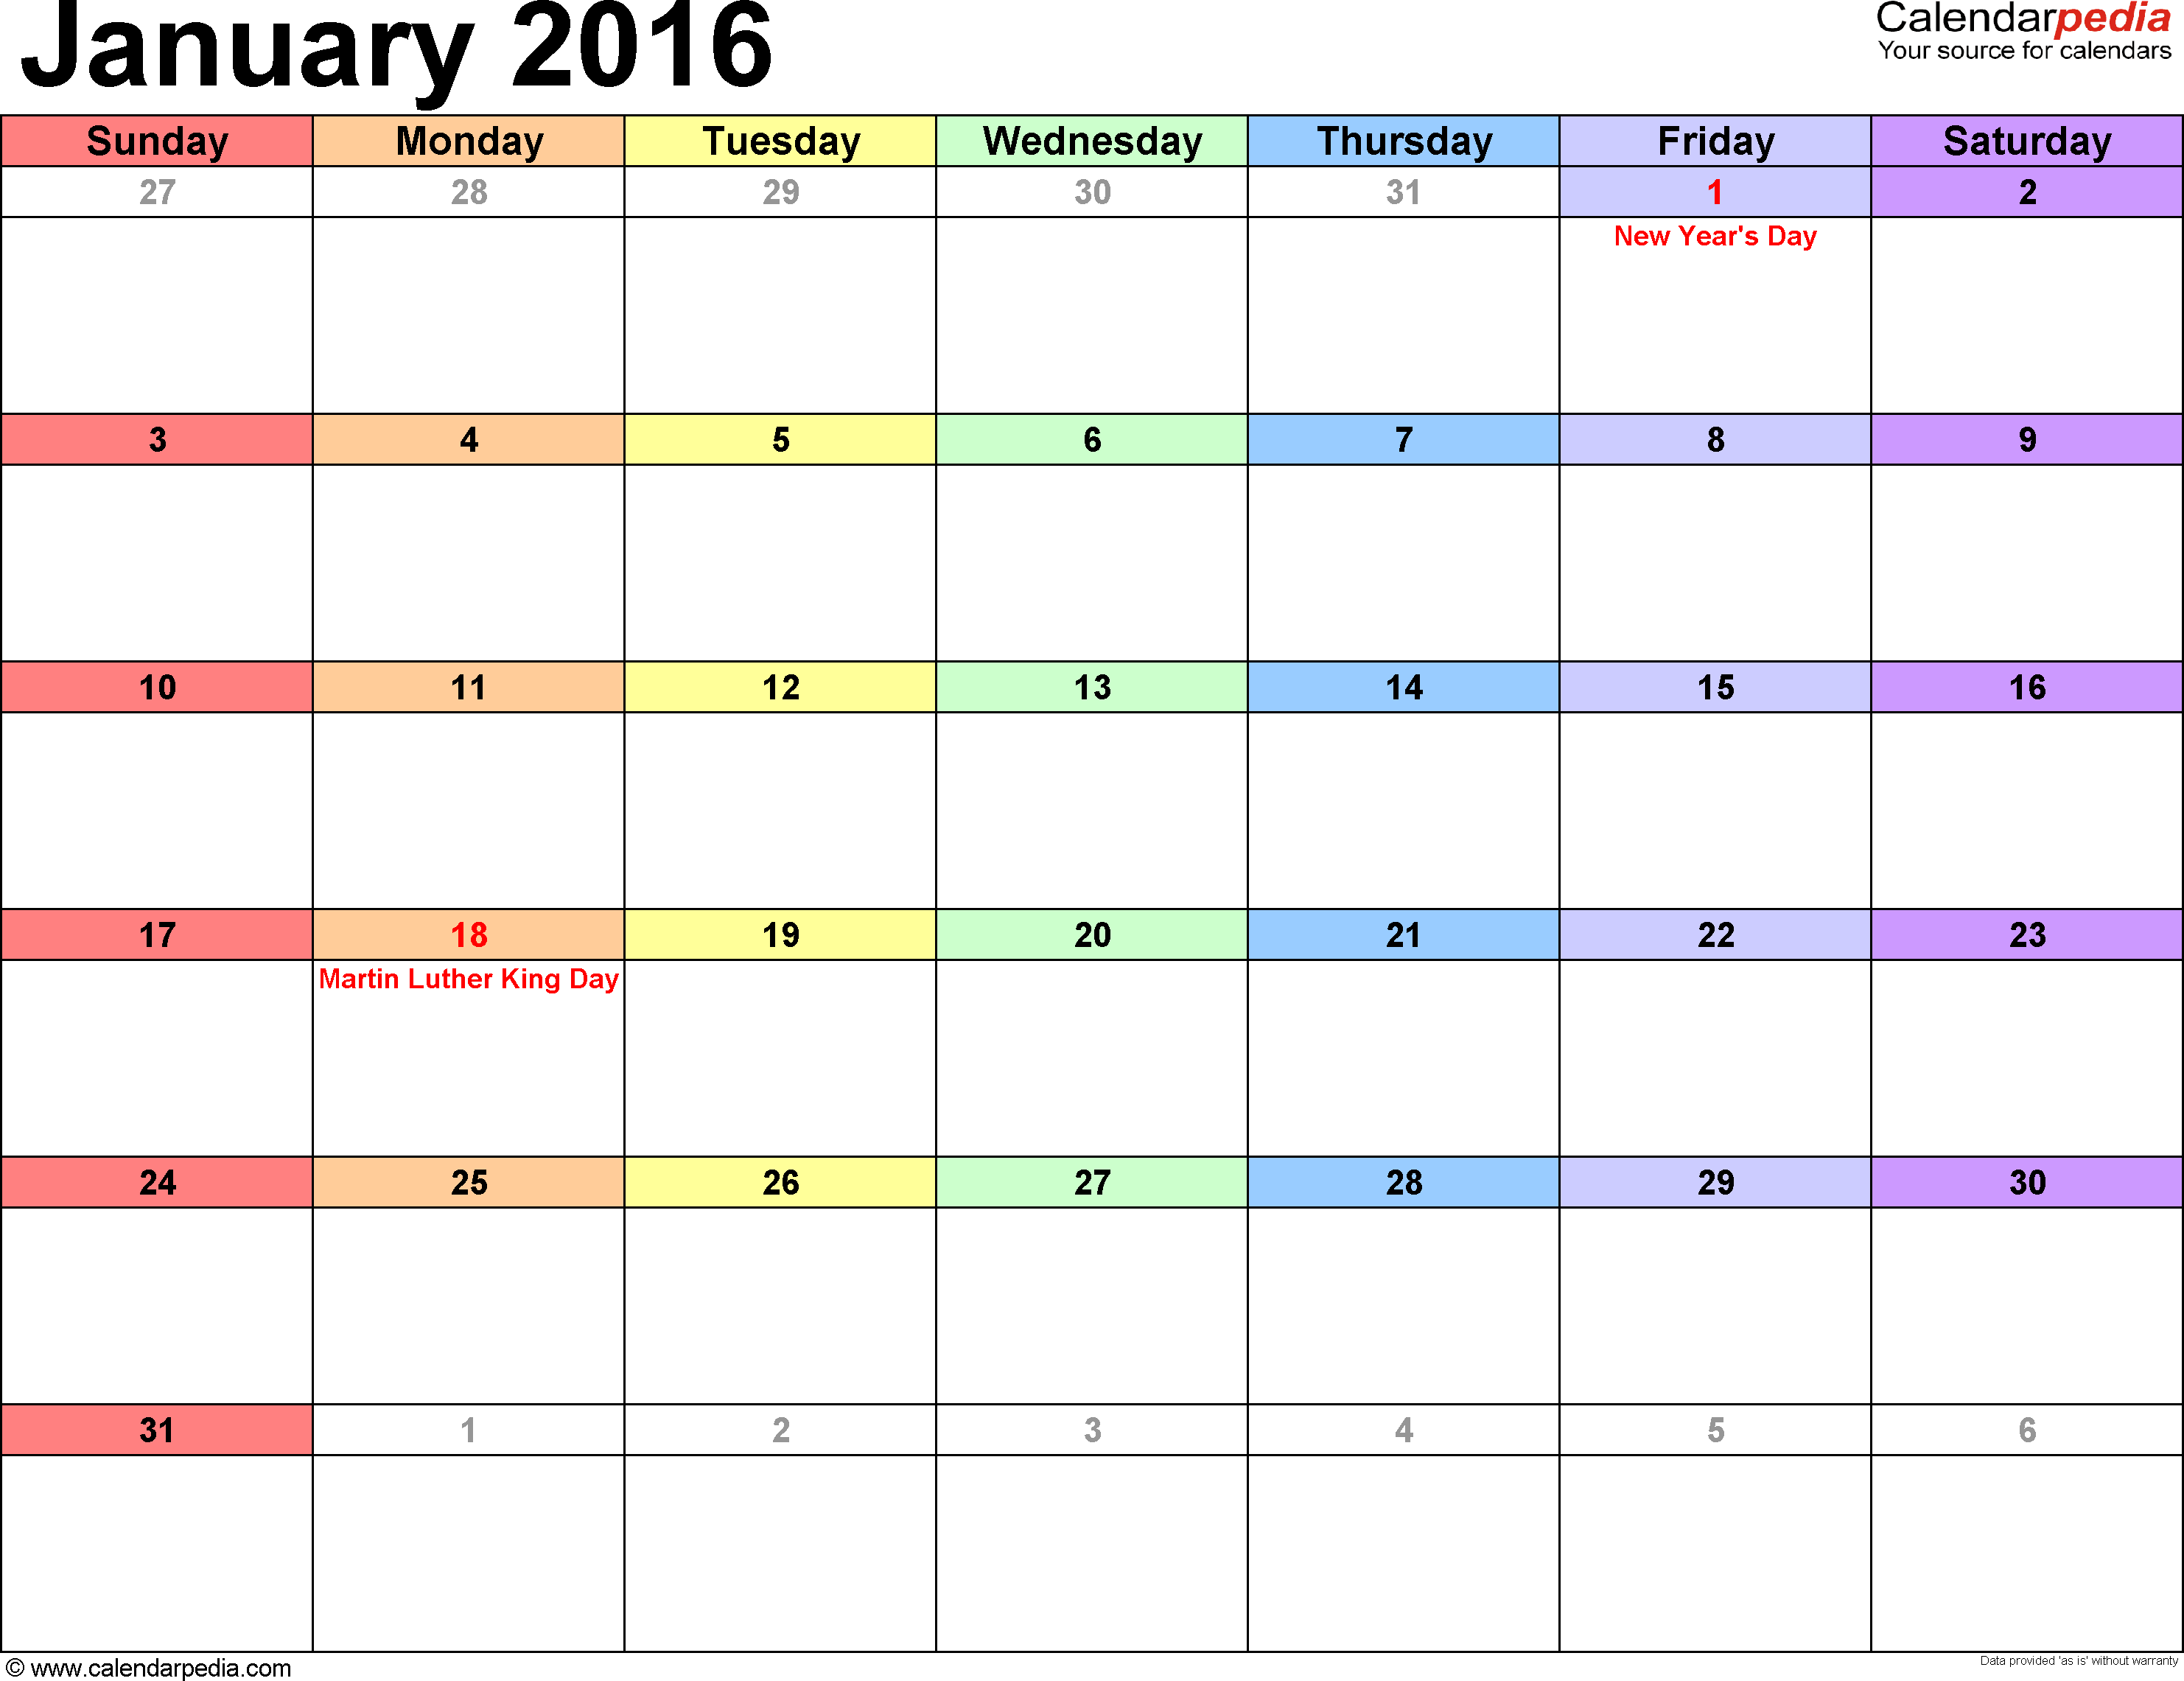 January 2016 calendar printable template